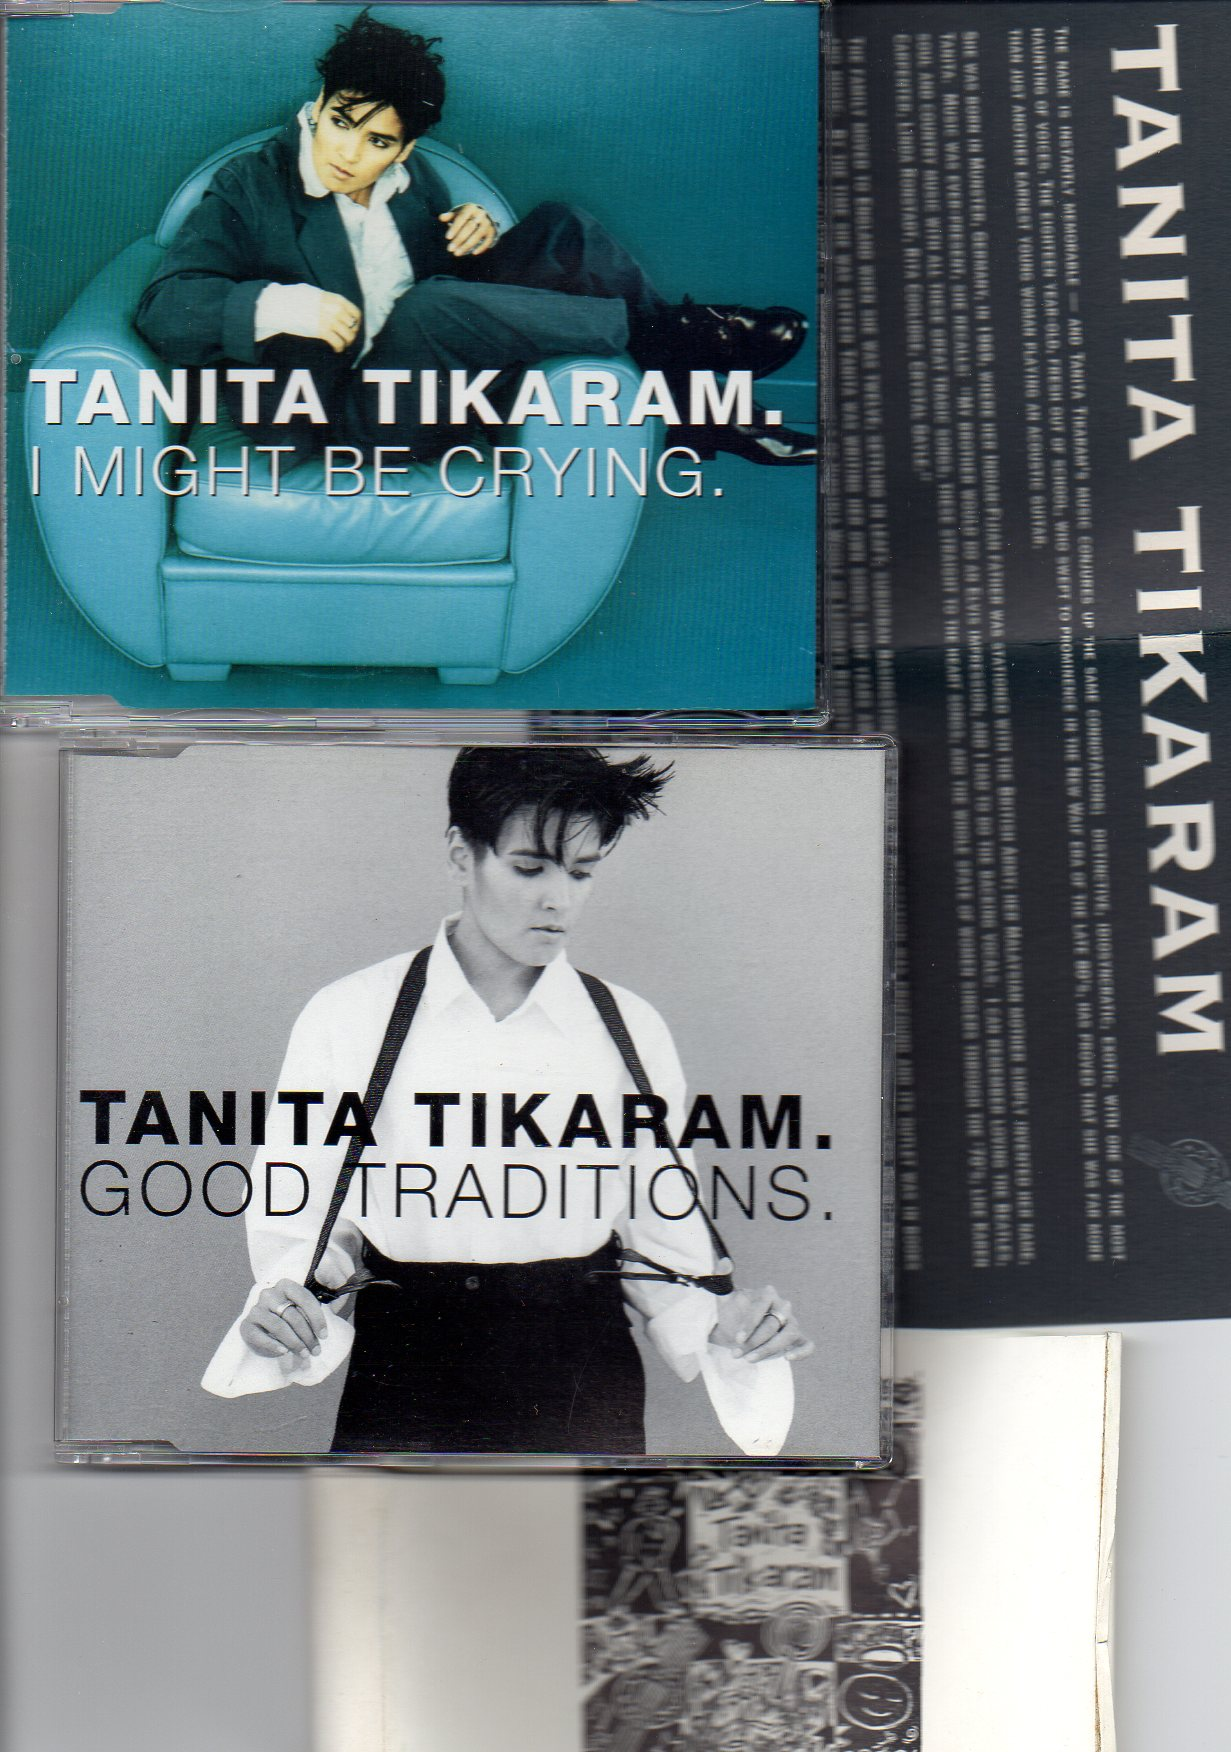 TANITA TIKARAM - Good traditions - I might be crying - set of 2 Promo singles inc leaflet - MCD